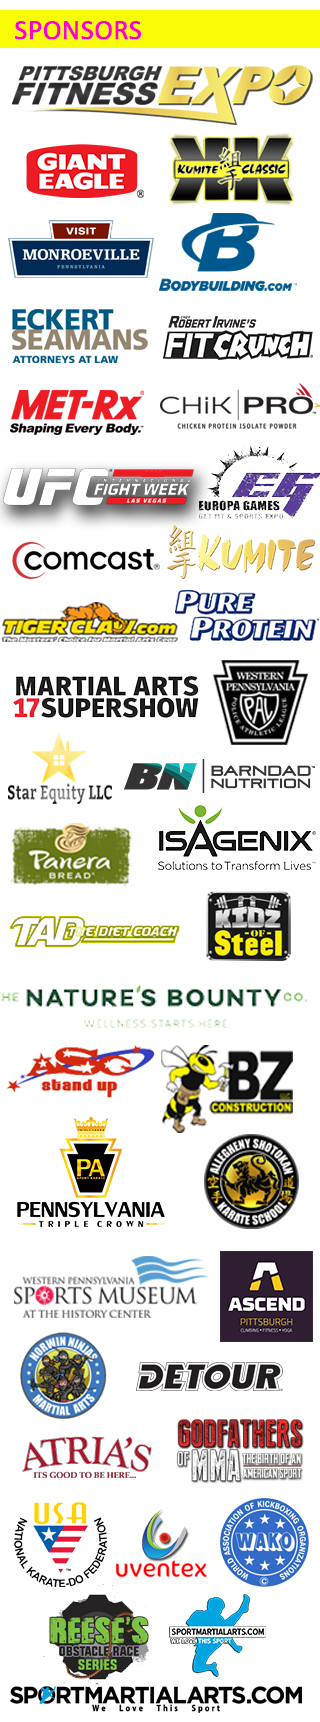 pittsburgh fitness expo sponsors